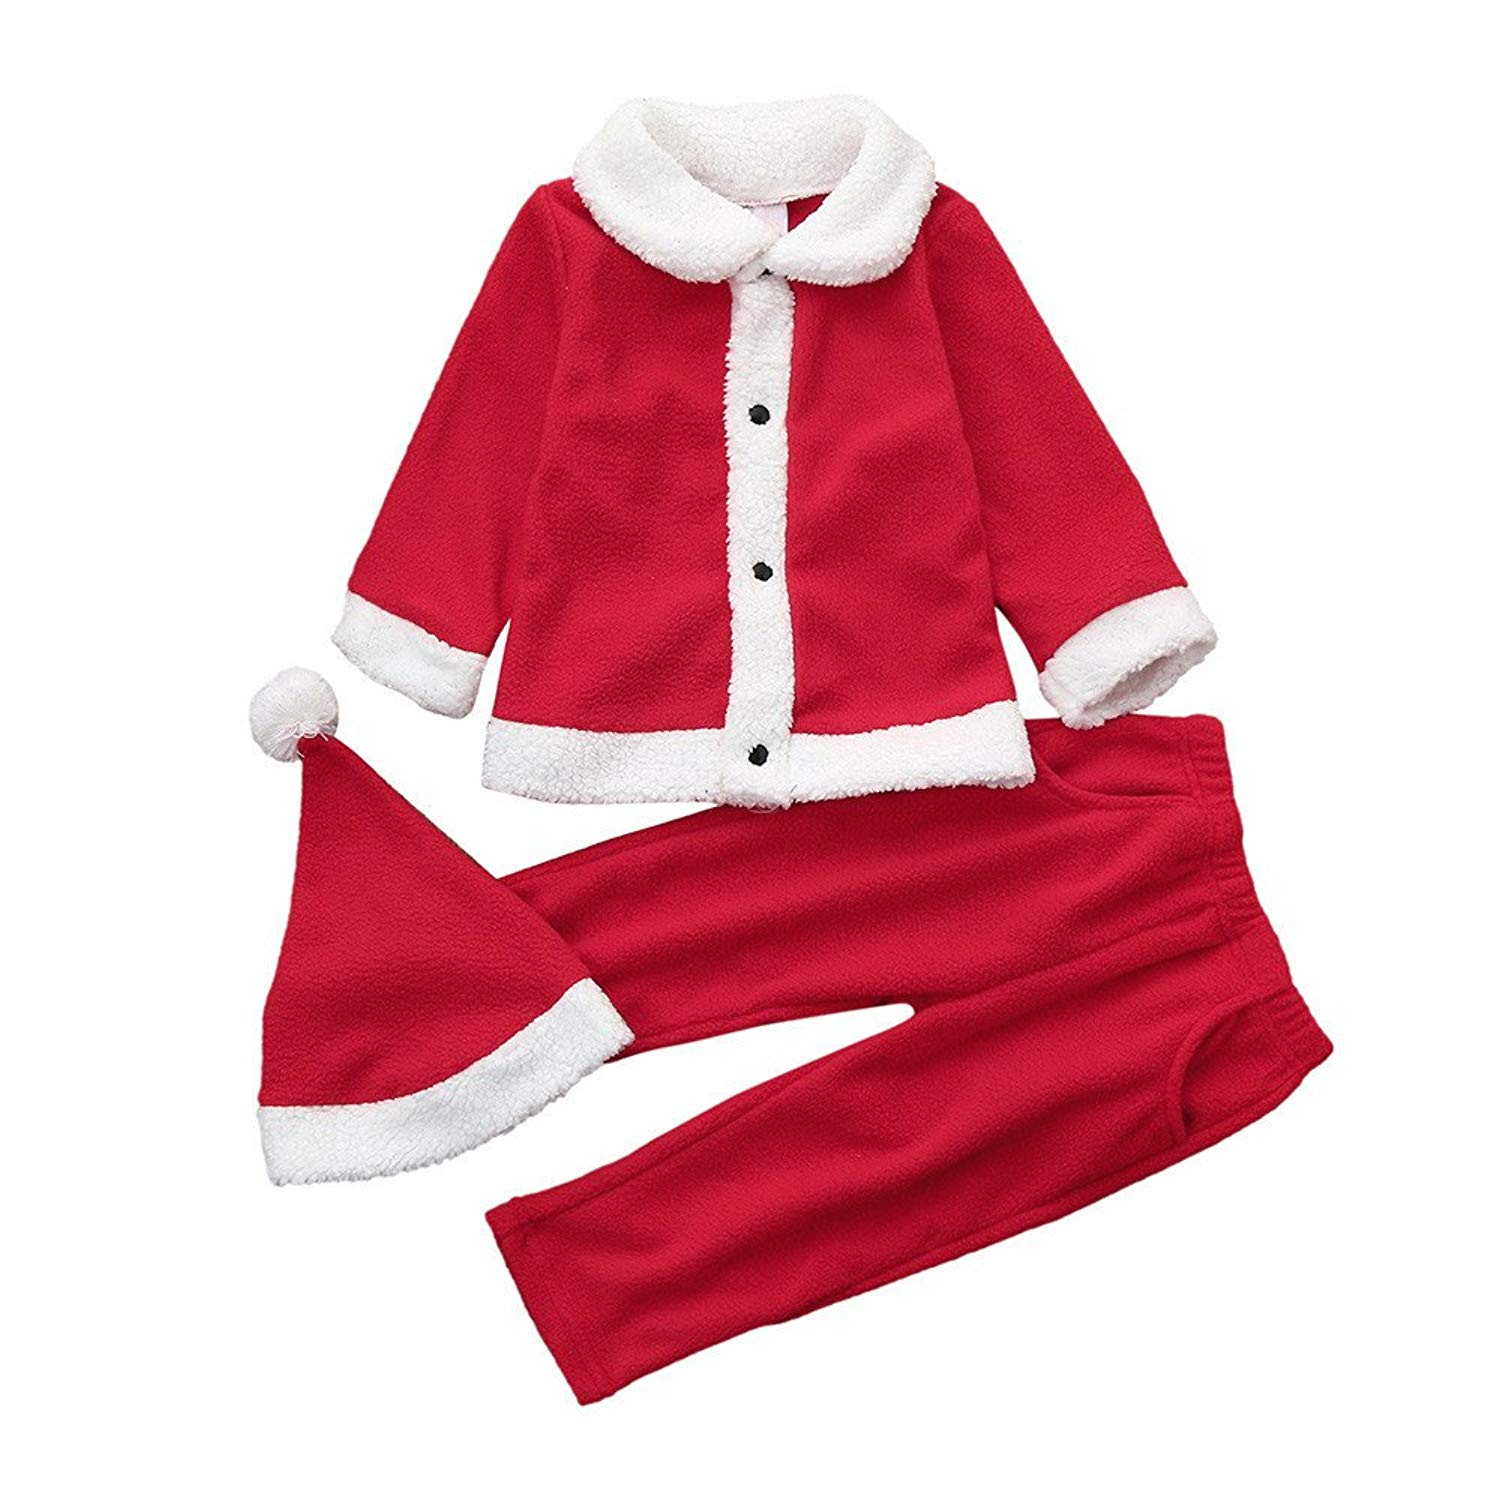 c6994d73661e1 Get Quotations · Hstore Baby Boys Girls Romper Christmas SOFE Party Tops+Pants+Hat  Jumpsuit Clothes